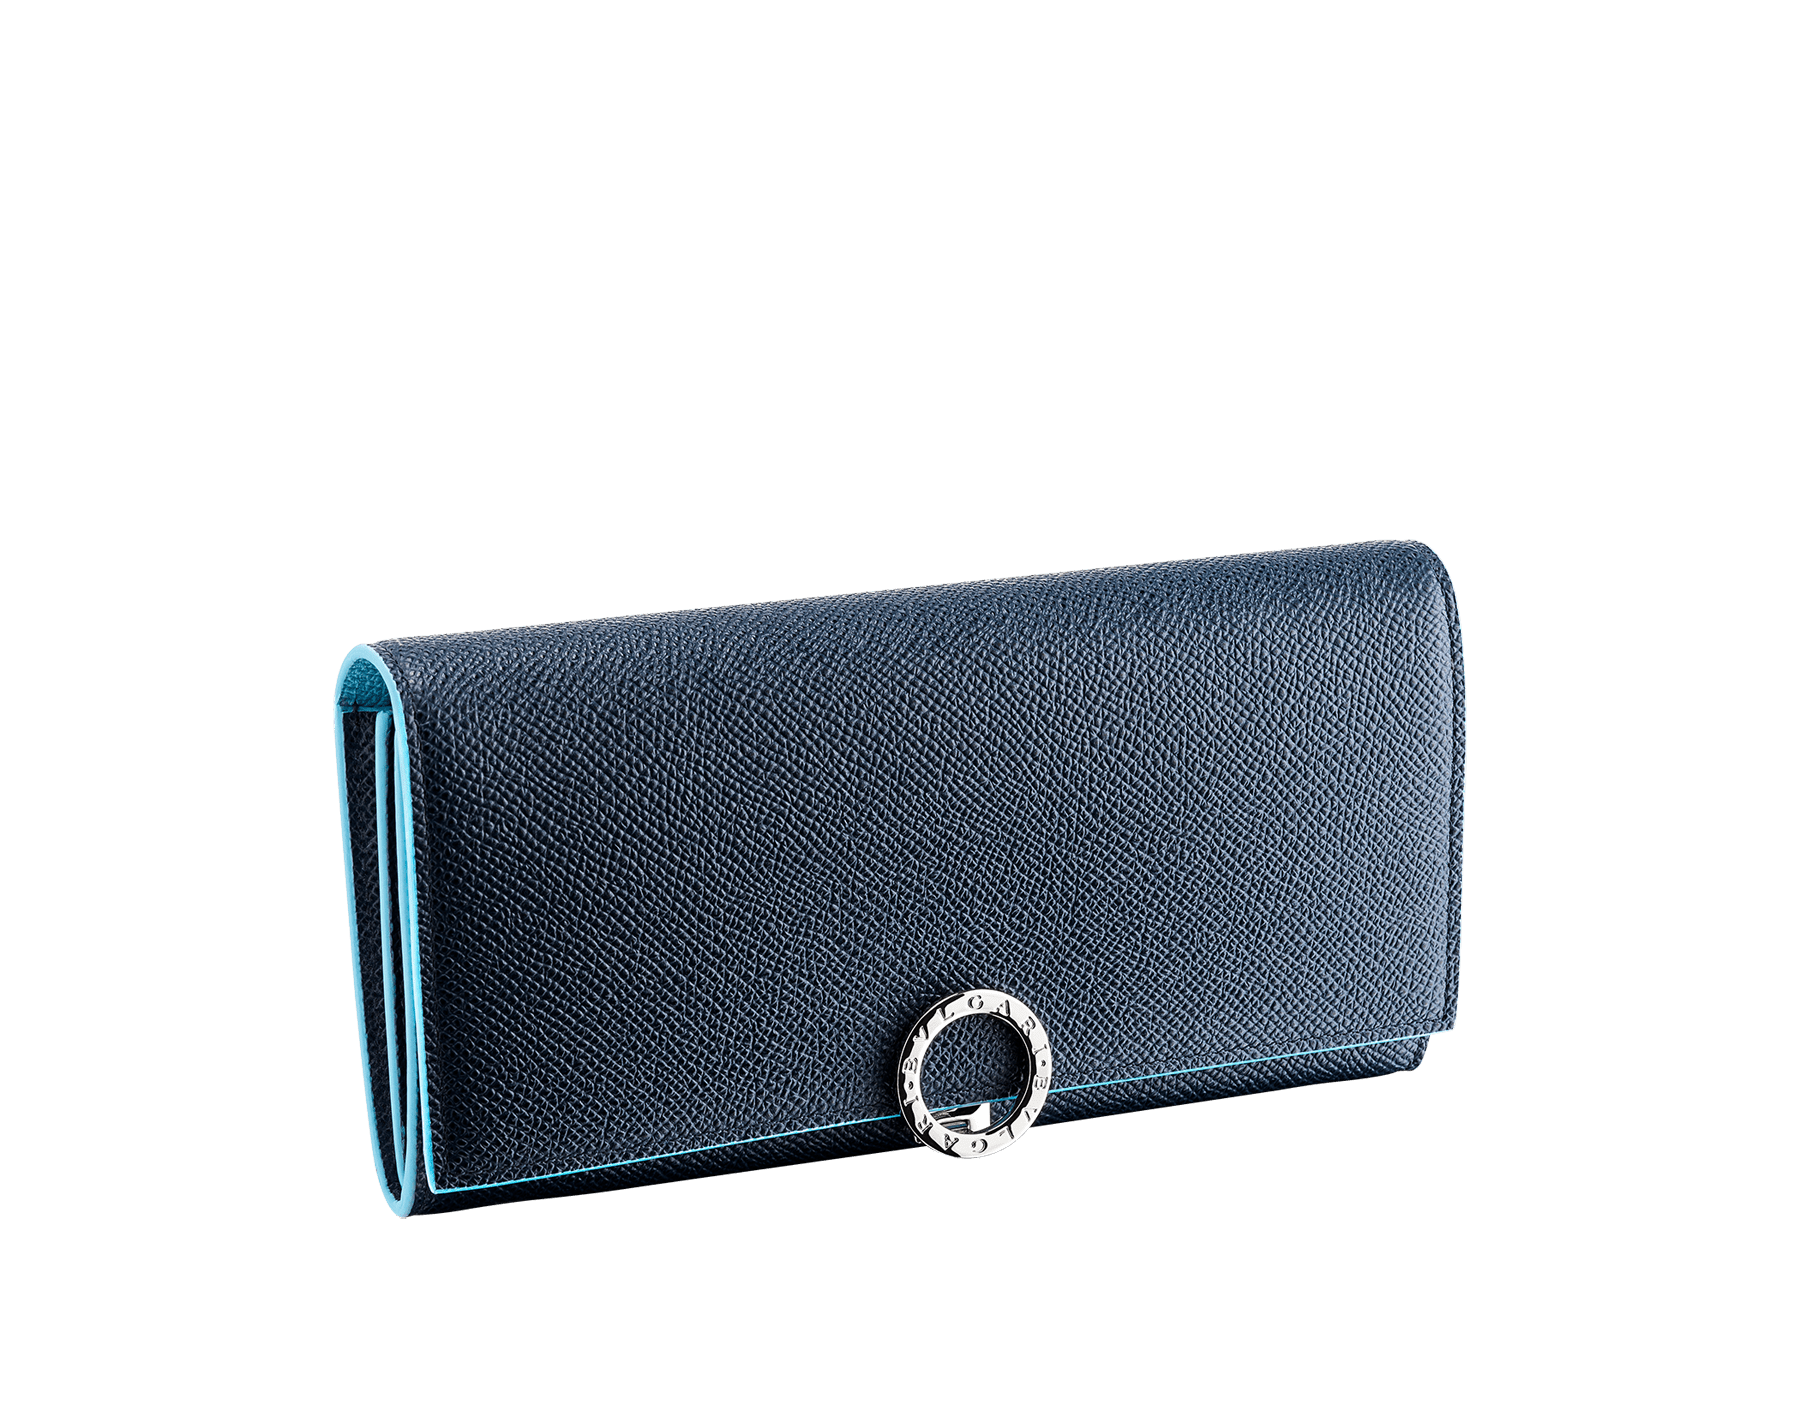 """Bvlgari Clip"" large wallet in Denim Sapphire blue and Aegean Topaz light blue grained calfskin. Iconic logo clip closure in palladium-plated brass 290672 image 1"